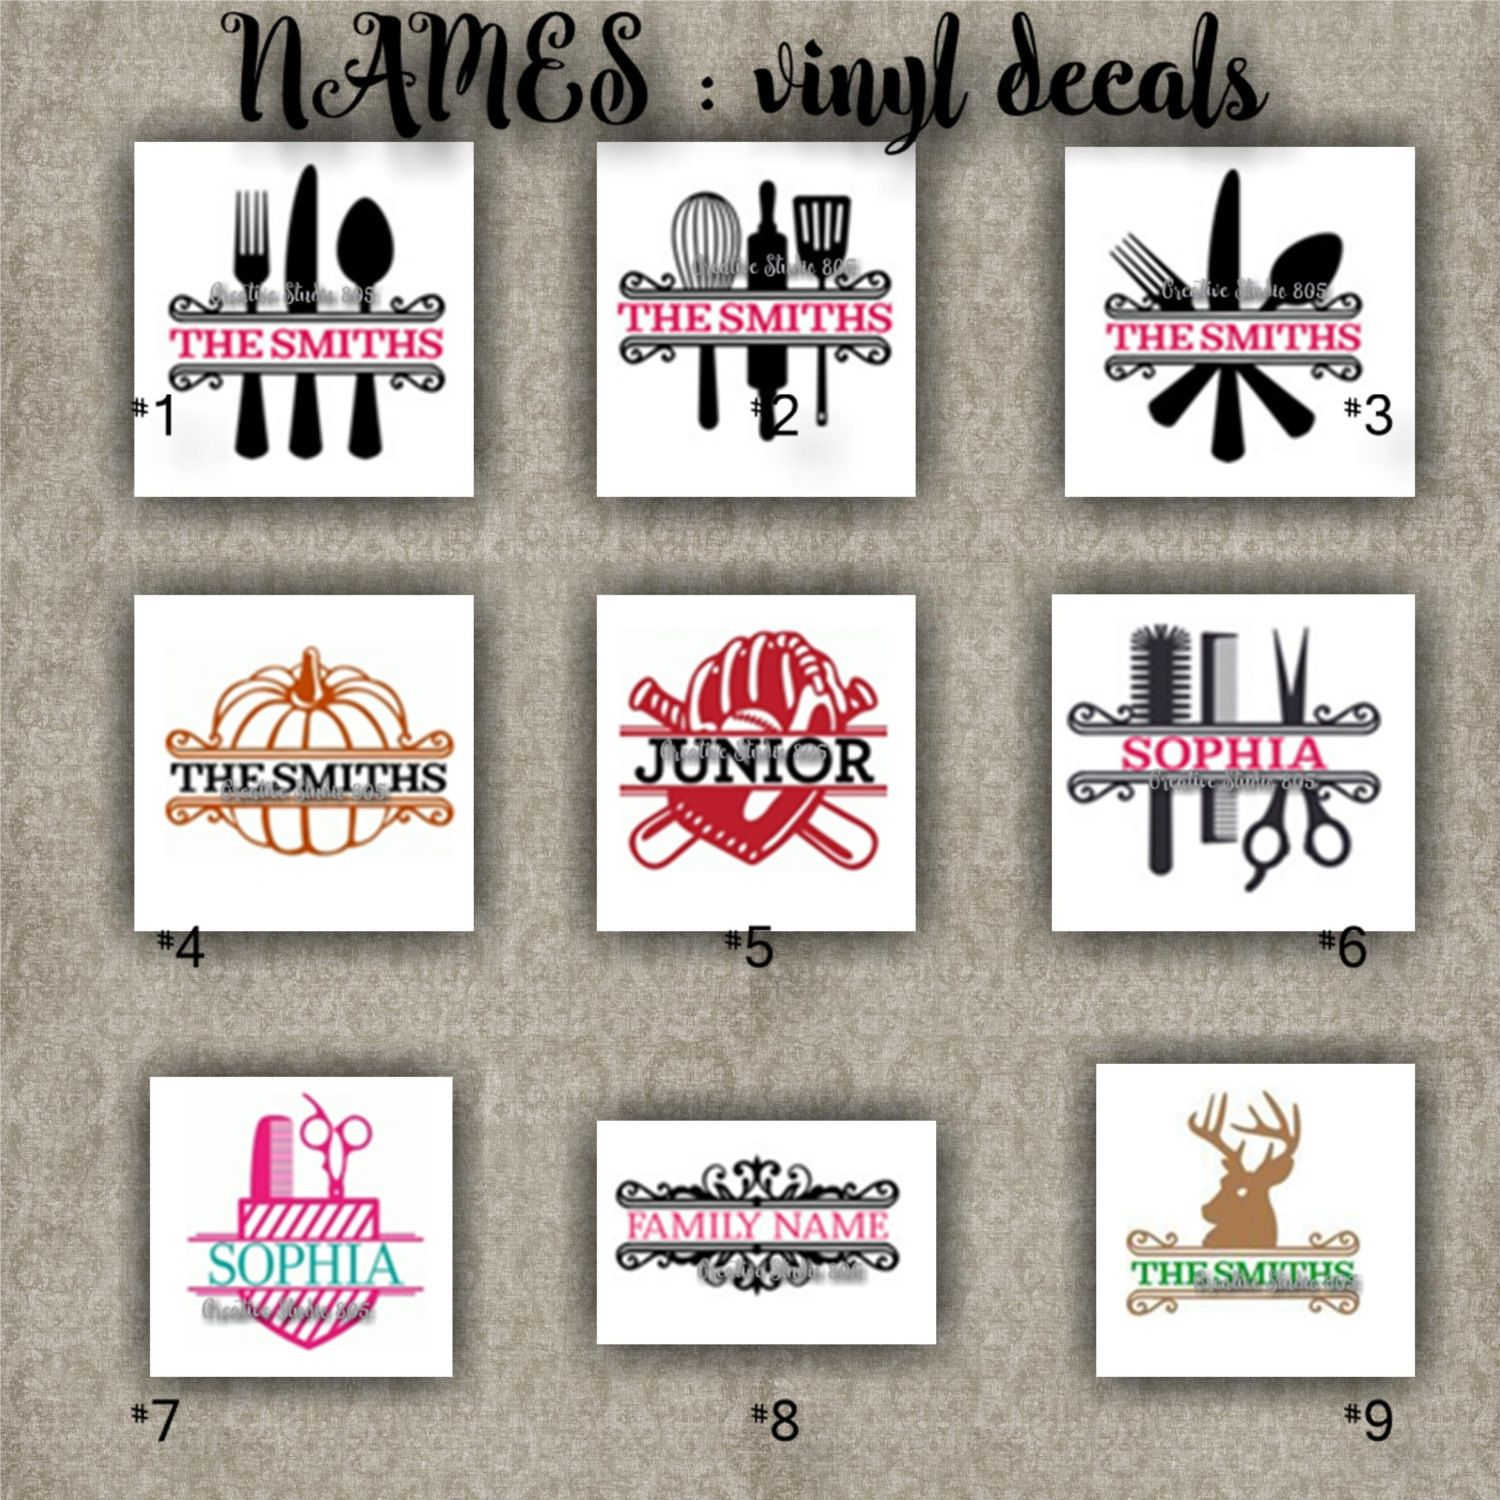 Family names vinyl decals last name initial decal sticker car decals car stickers laptop sticker 1 9 by creativedecals805 on etsy